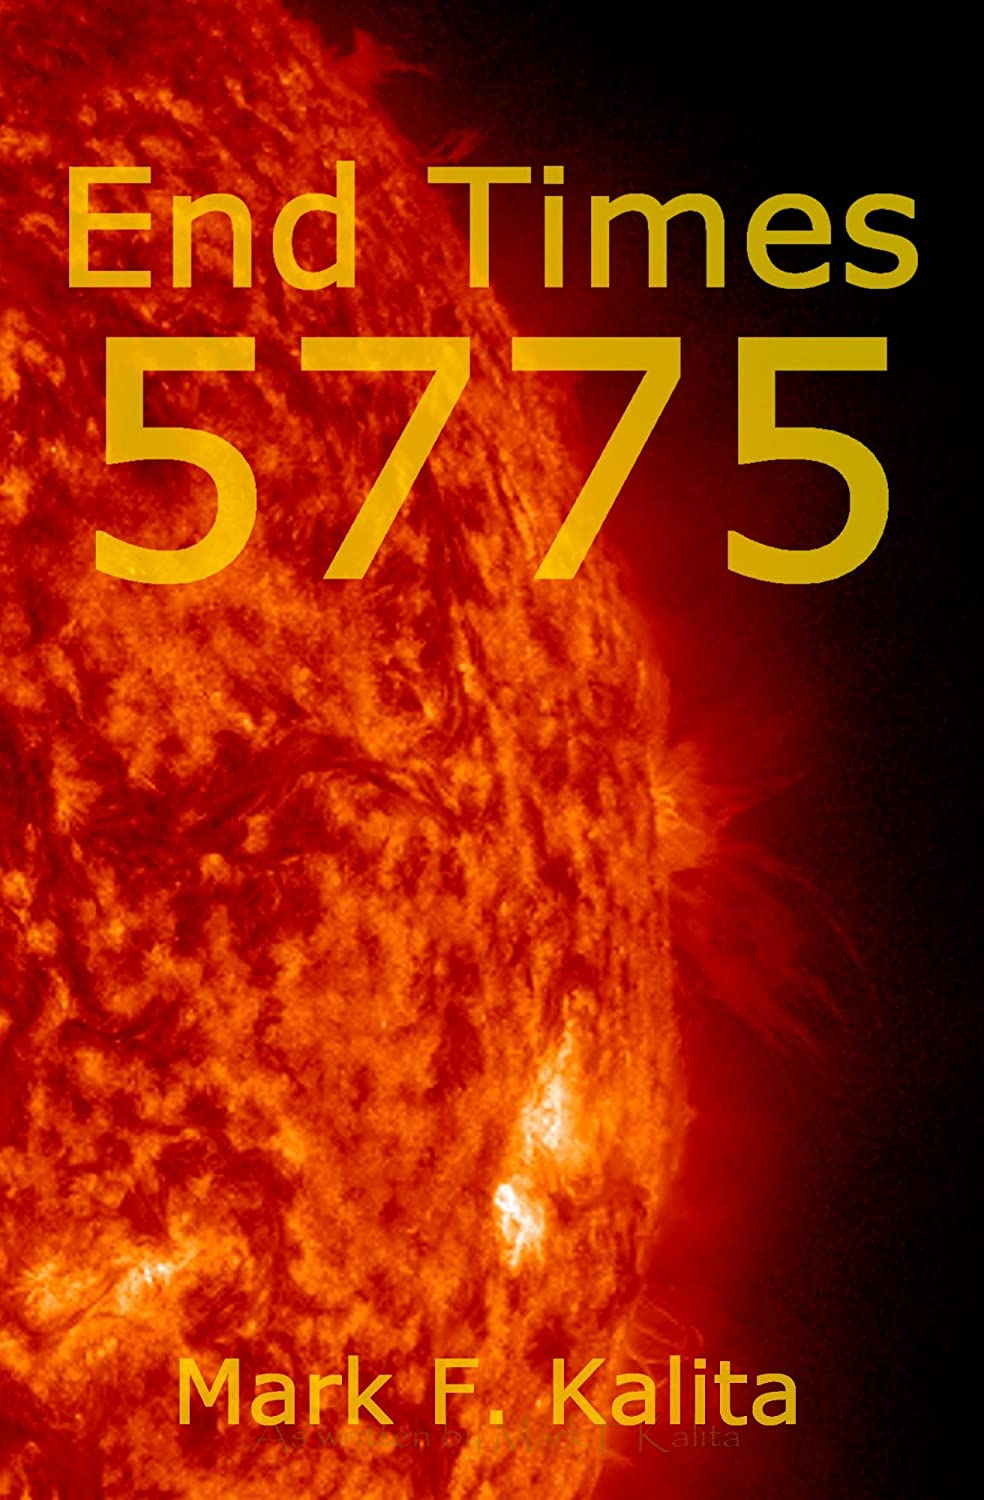 end times 5775